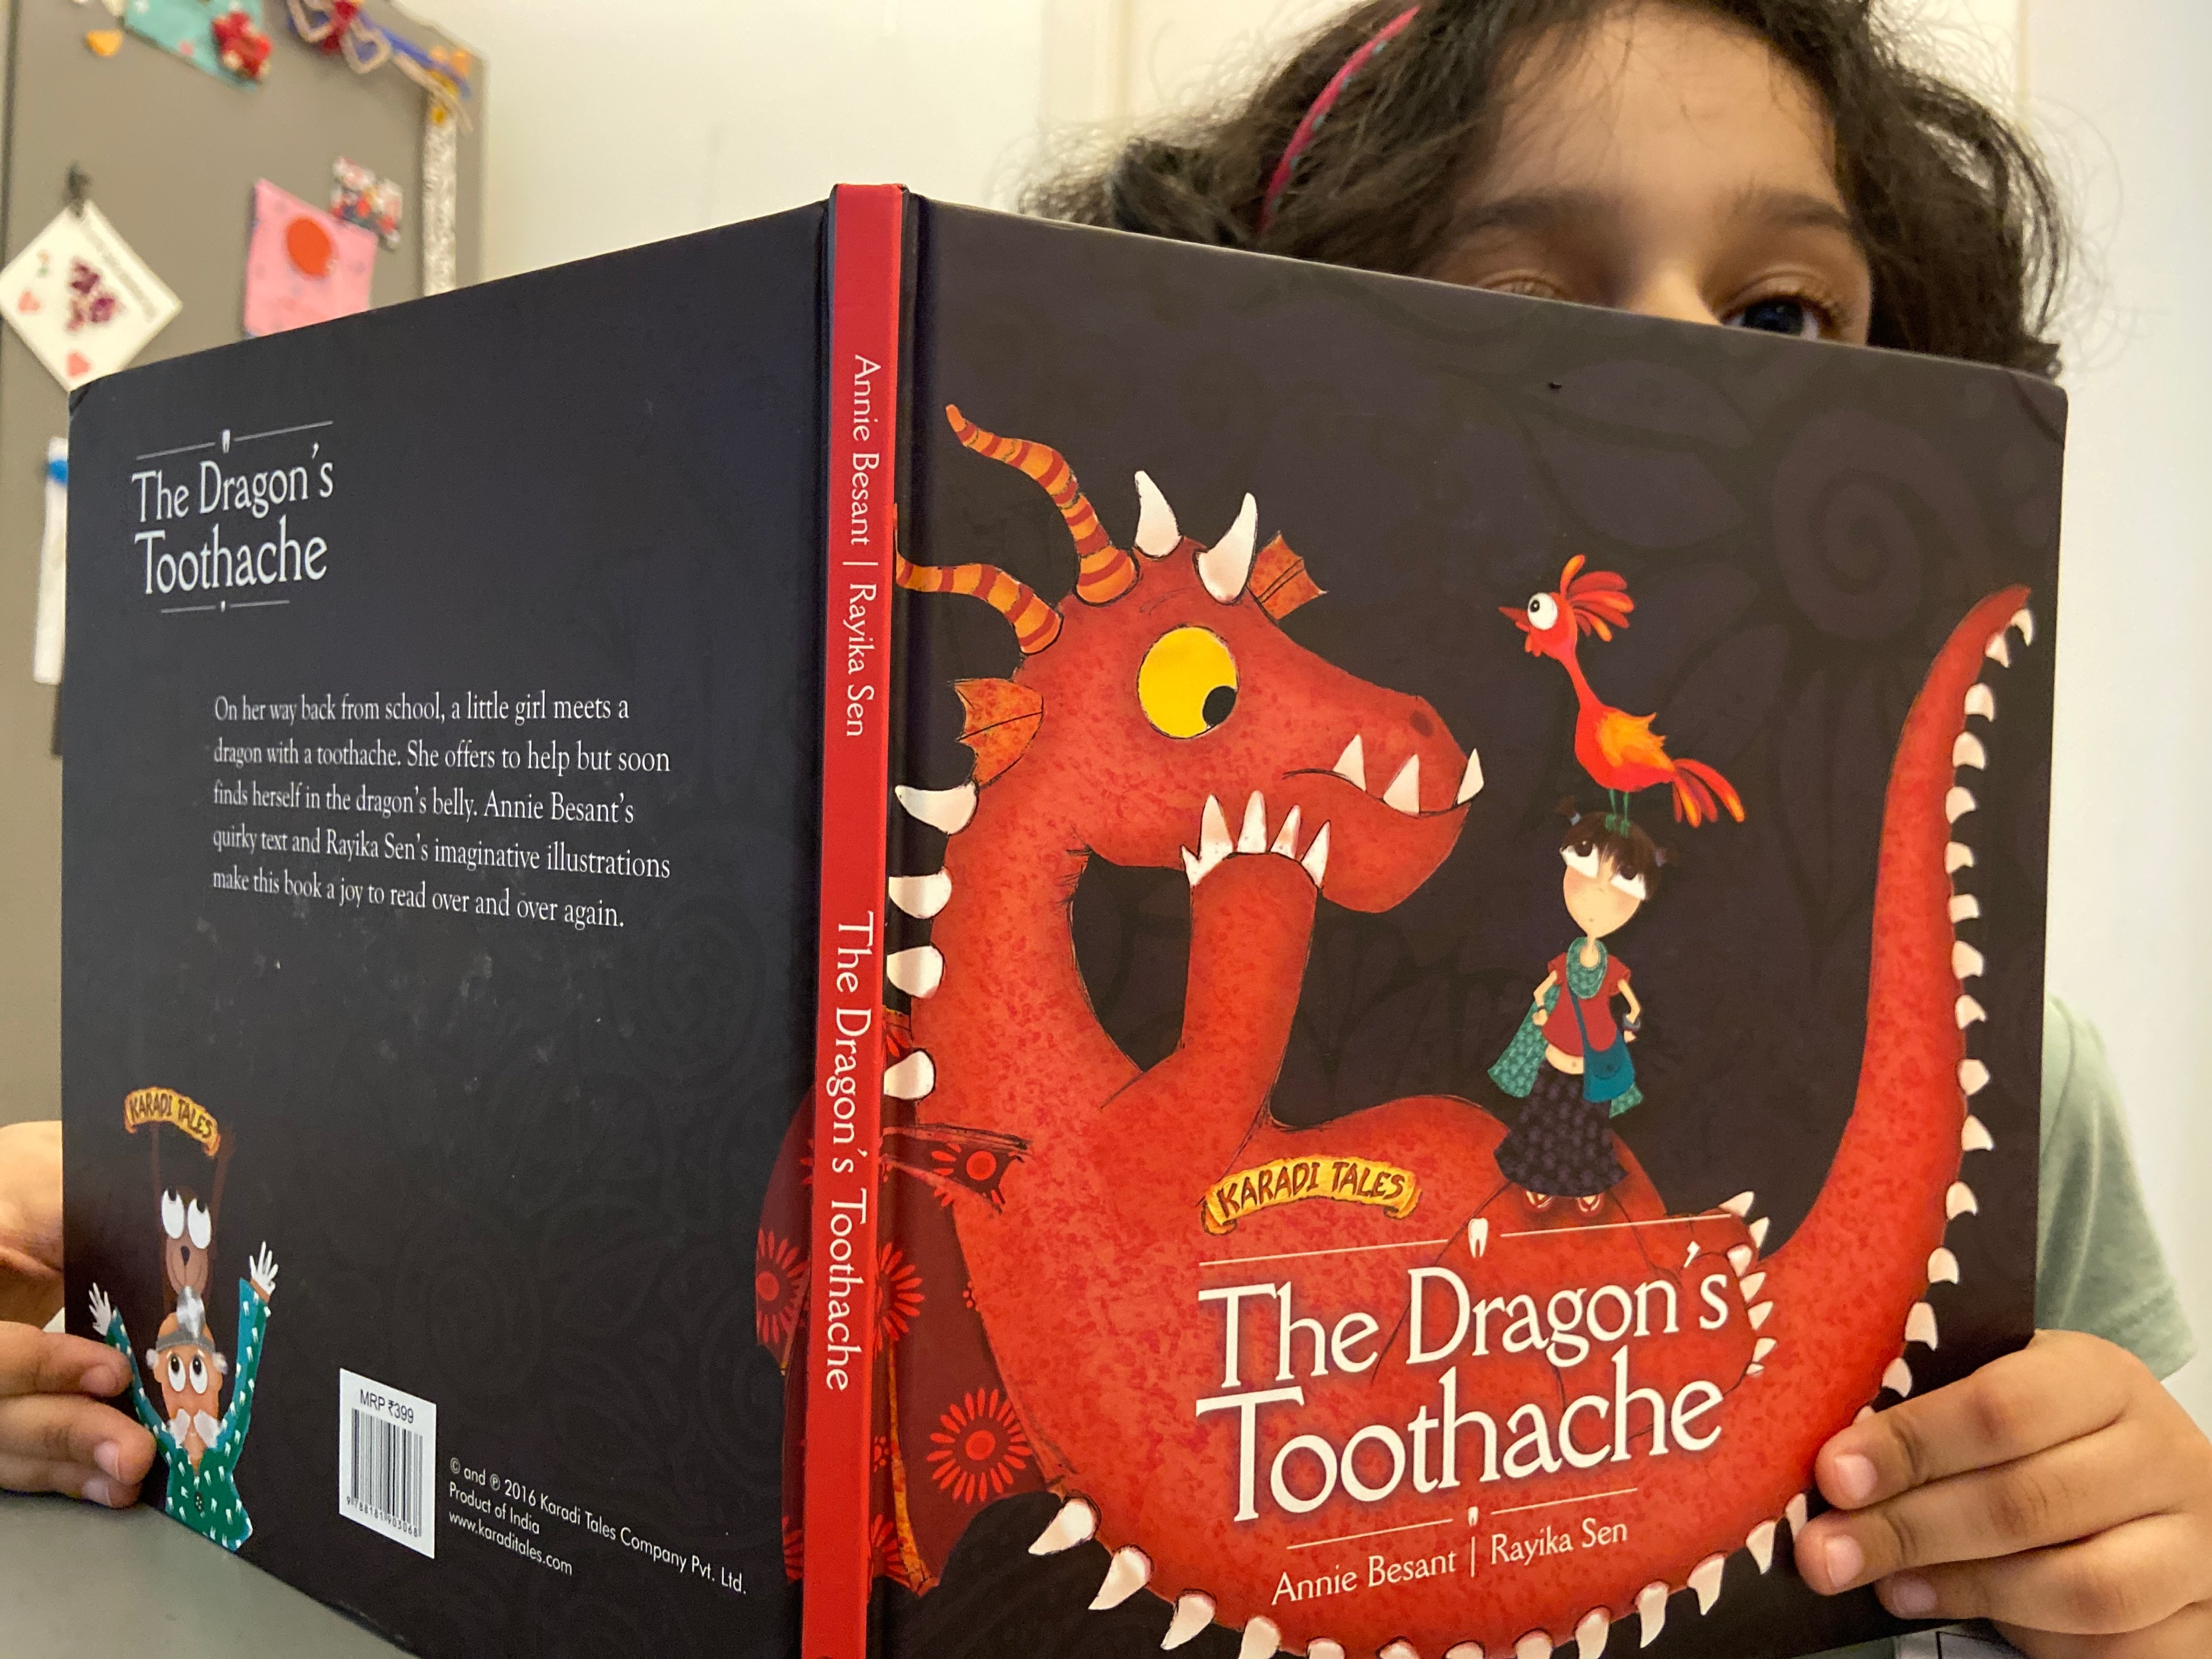 The dragons toothache by @karaditales